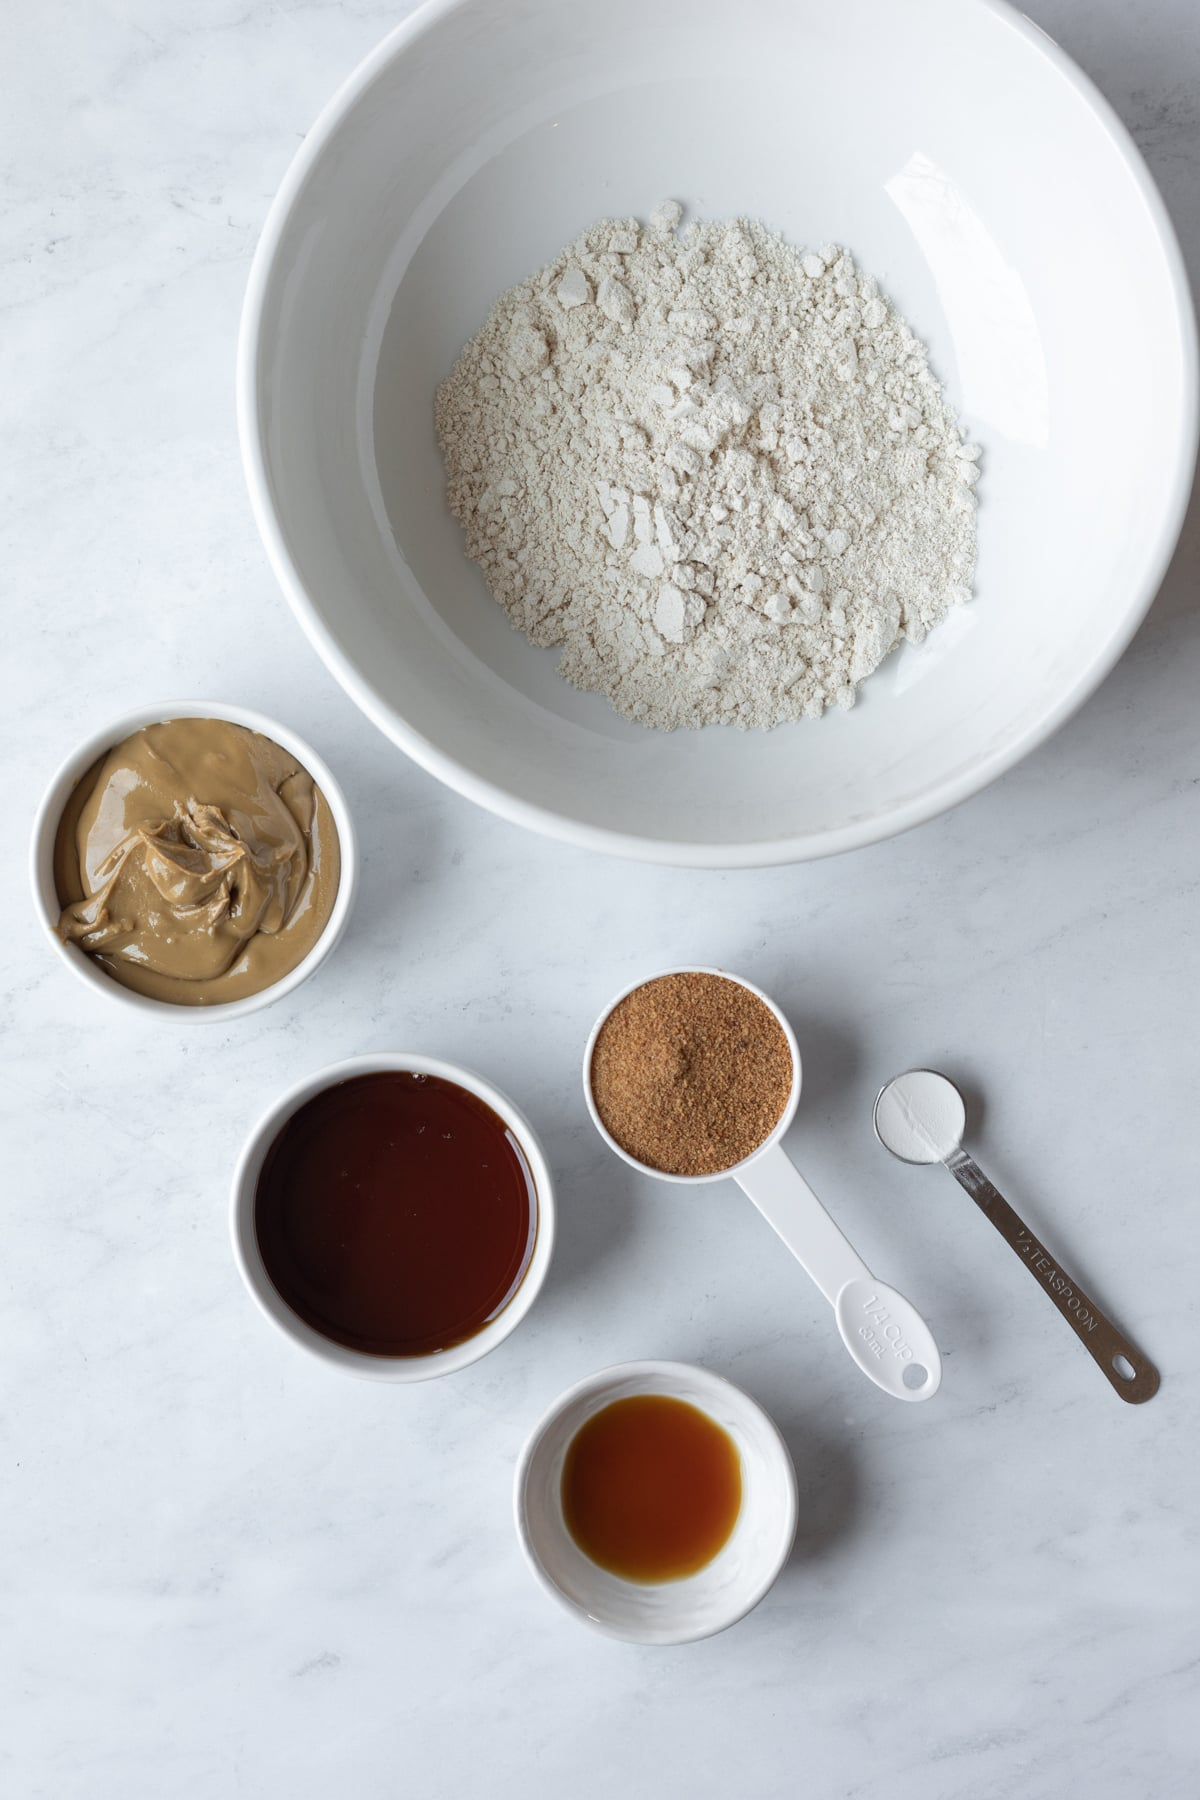 ingredients laid out on marble counter - oat flour, sunbutter, coconut sugar, maple syrup, vanilla